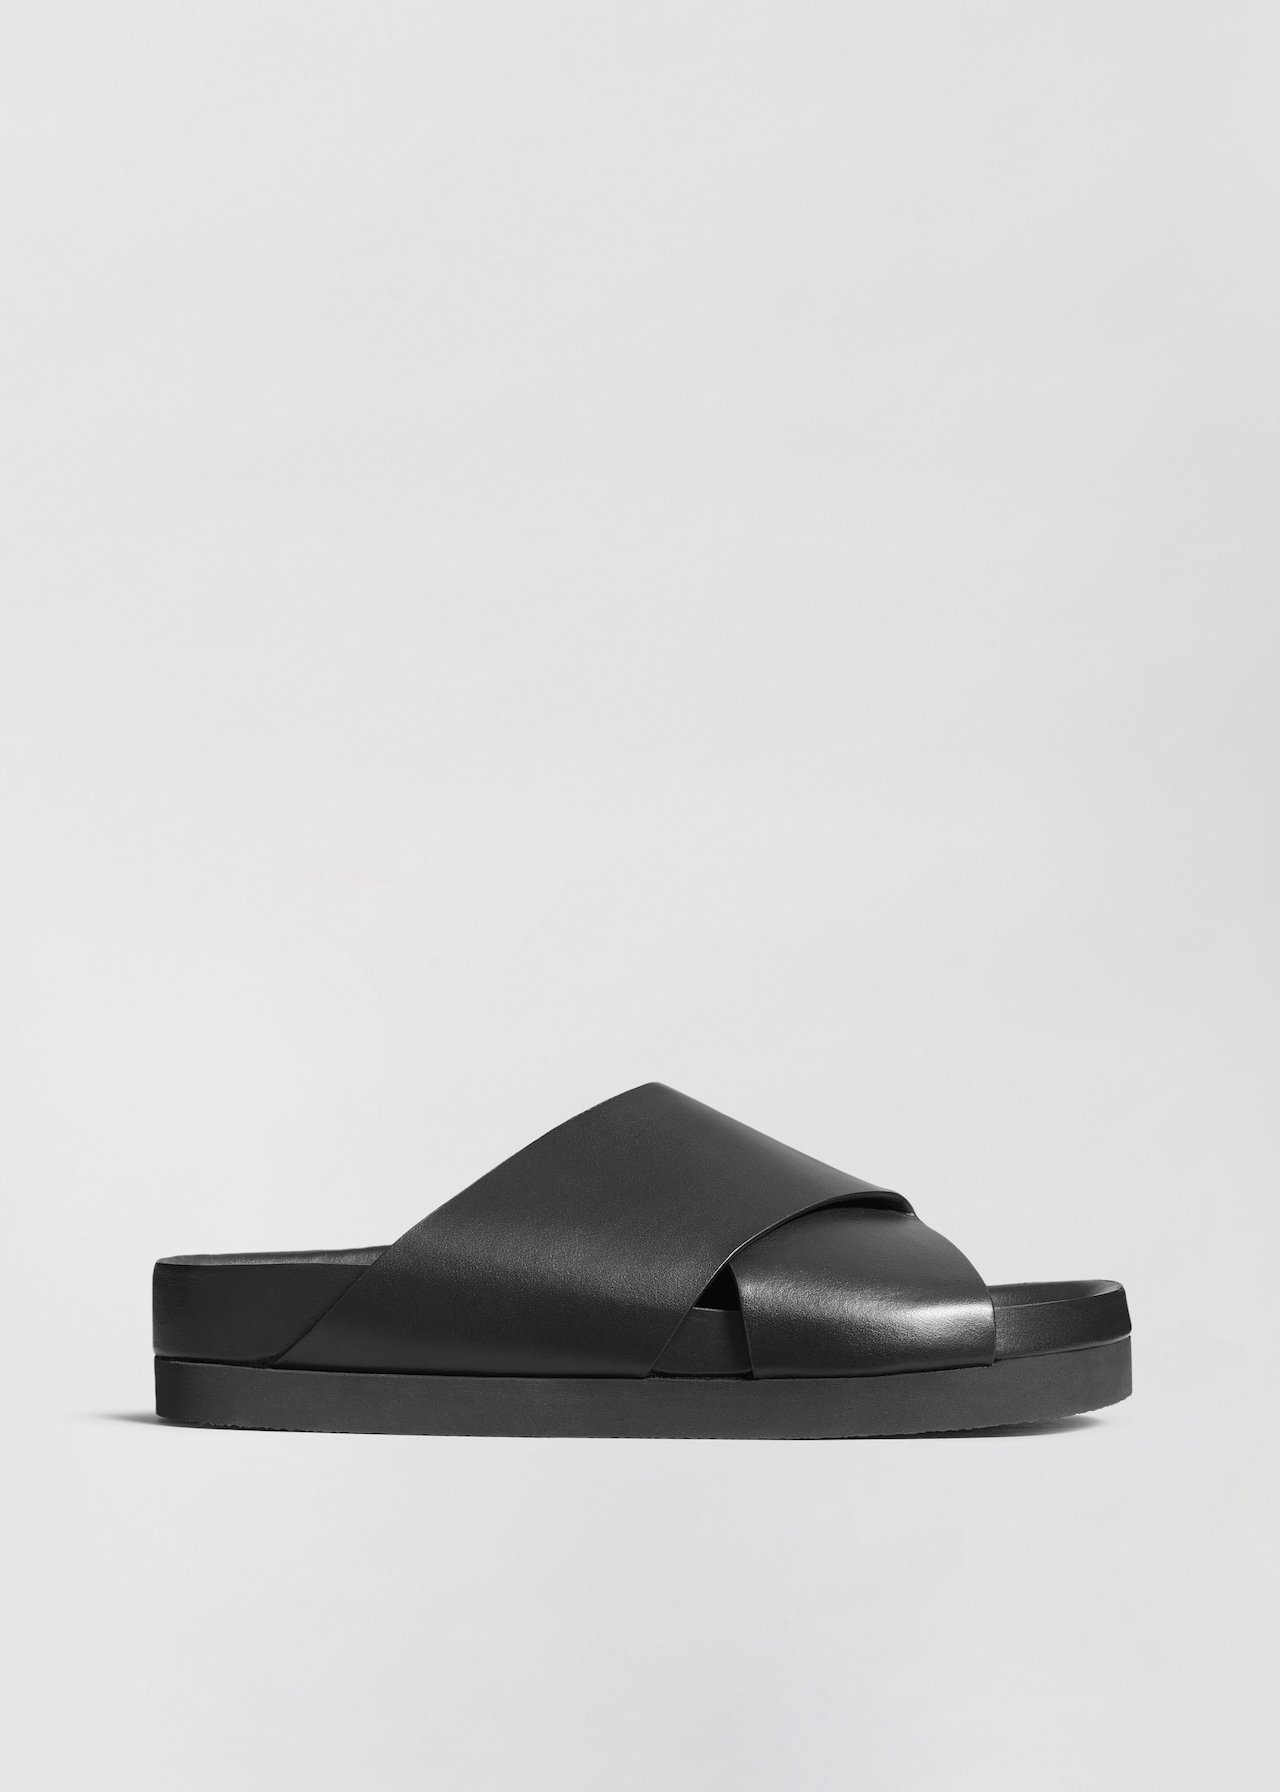 Slide Sandal in Smooth Leather - Black - CO